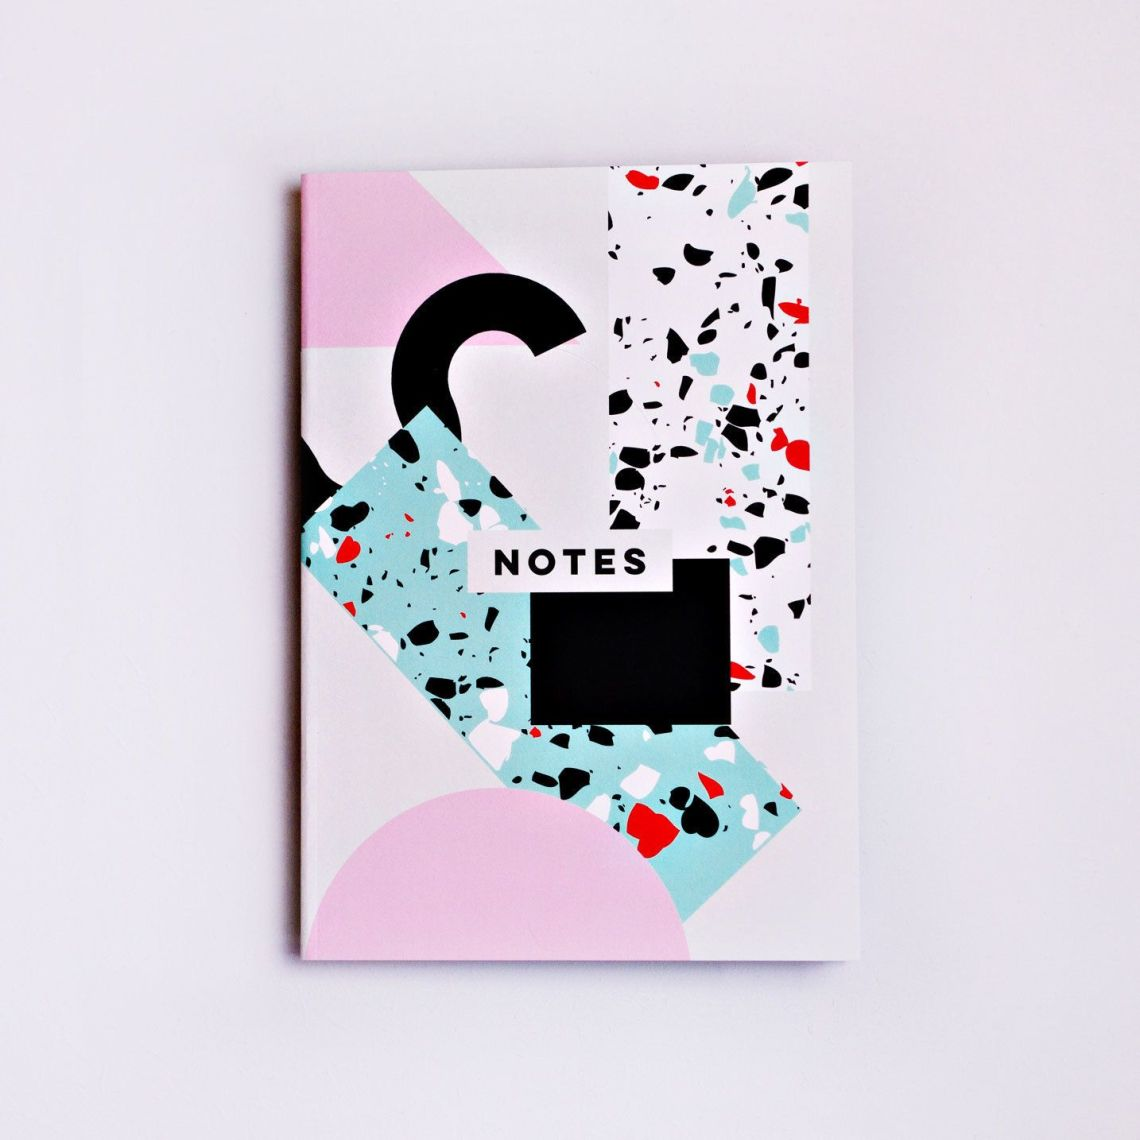 There are no notepads brighter and bolder than those from The Completist - and we love them. If there are any bullet journal fans among us, these A5 notepads are dotted rather than lined giving you the space to draw those tables and to-do blocks. The Completist. £7.50.